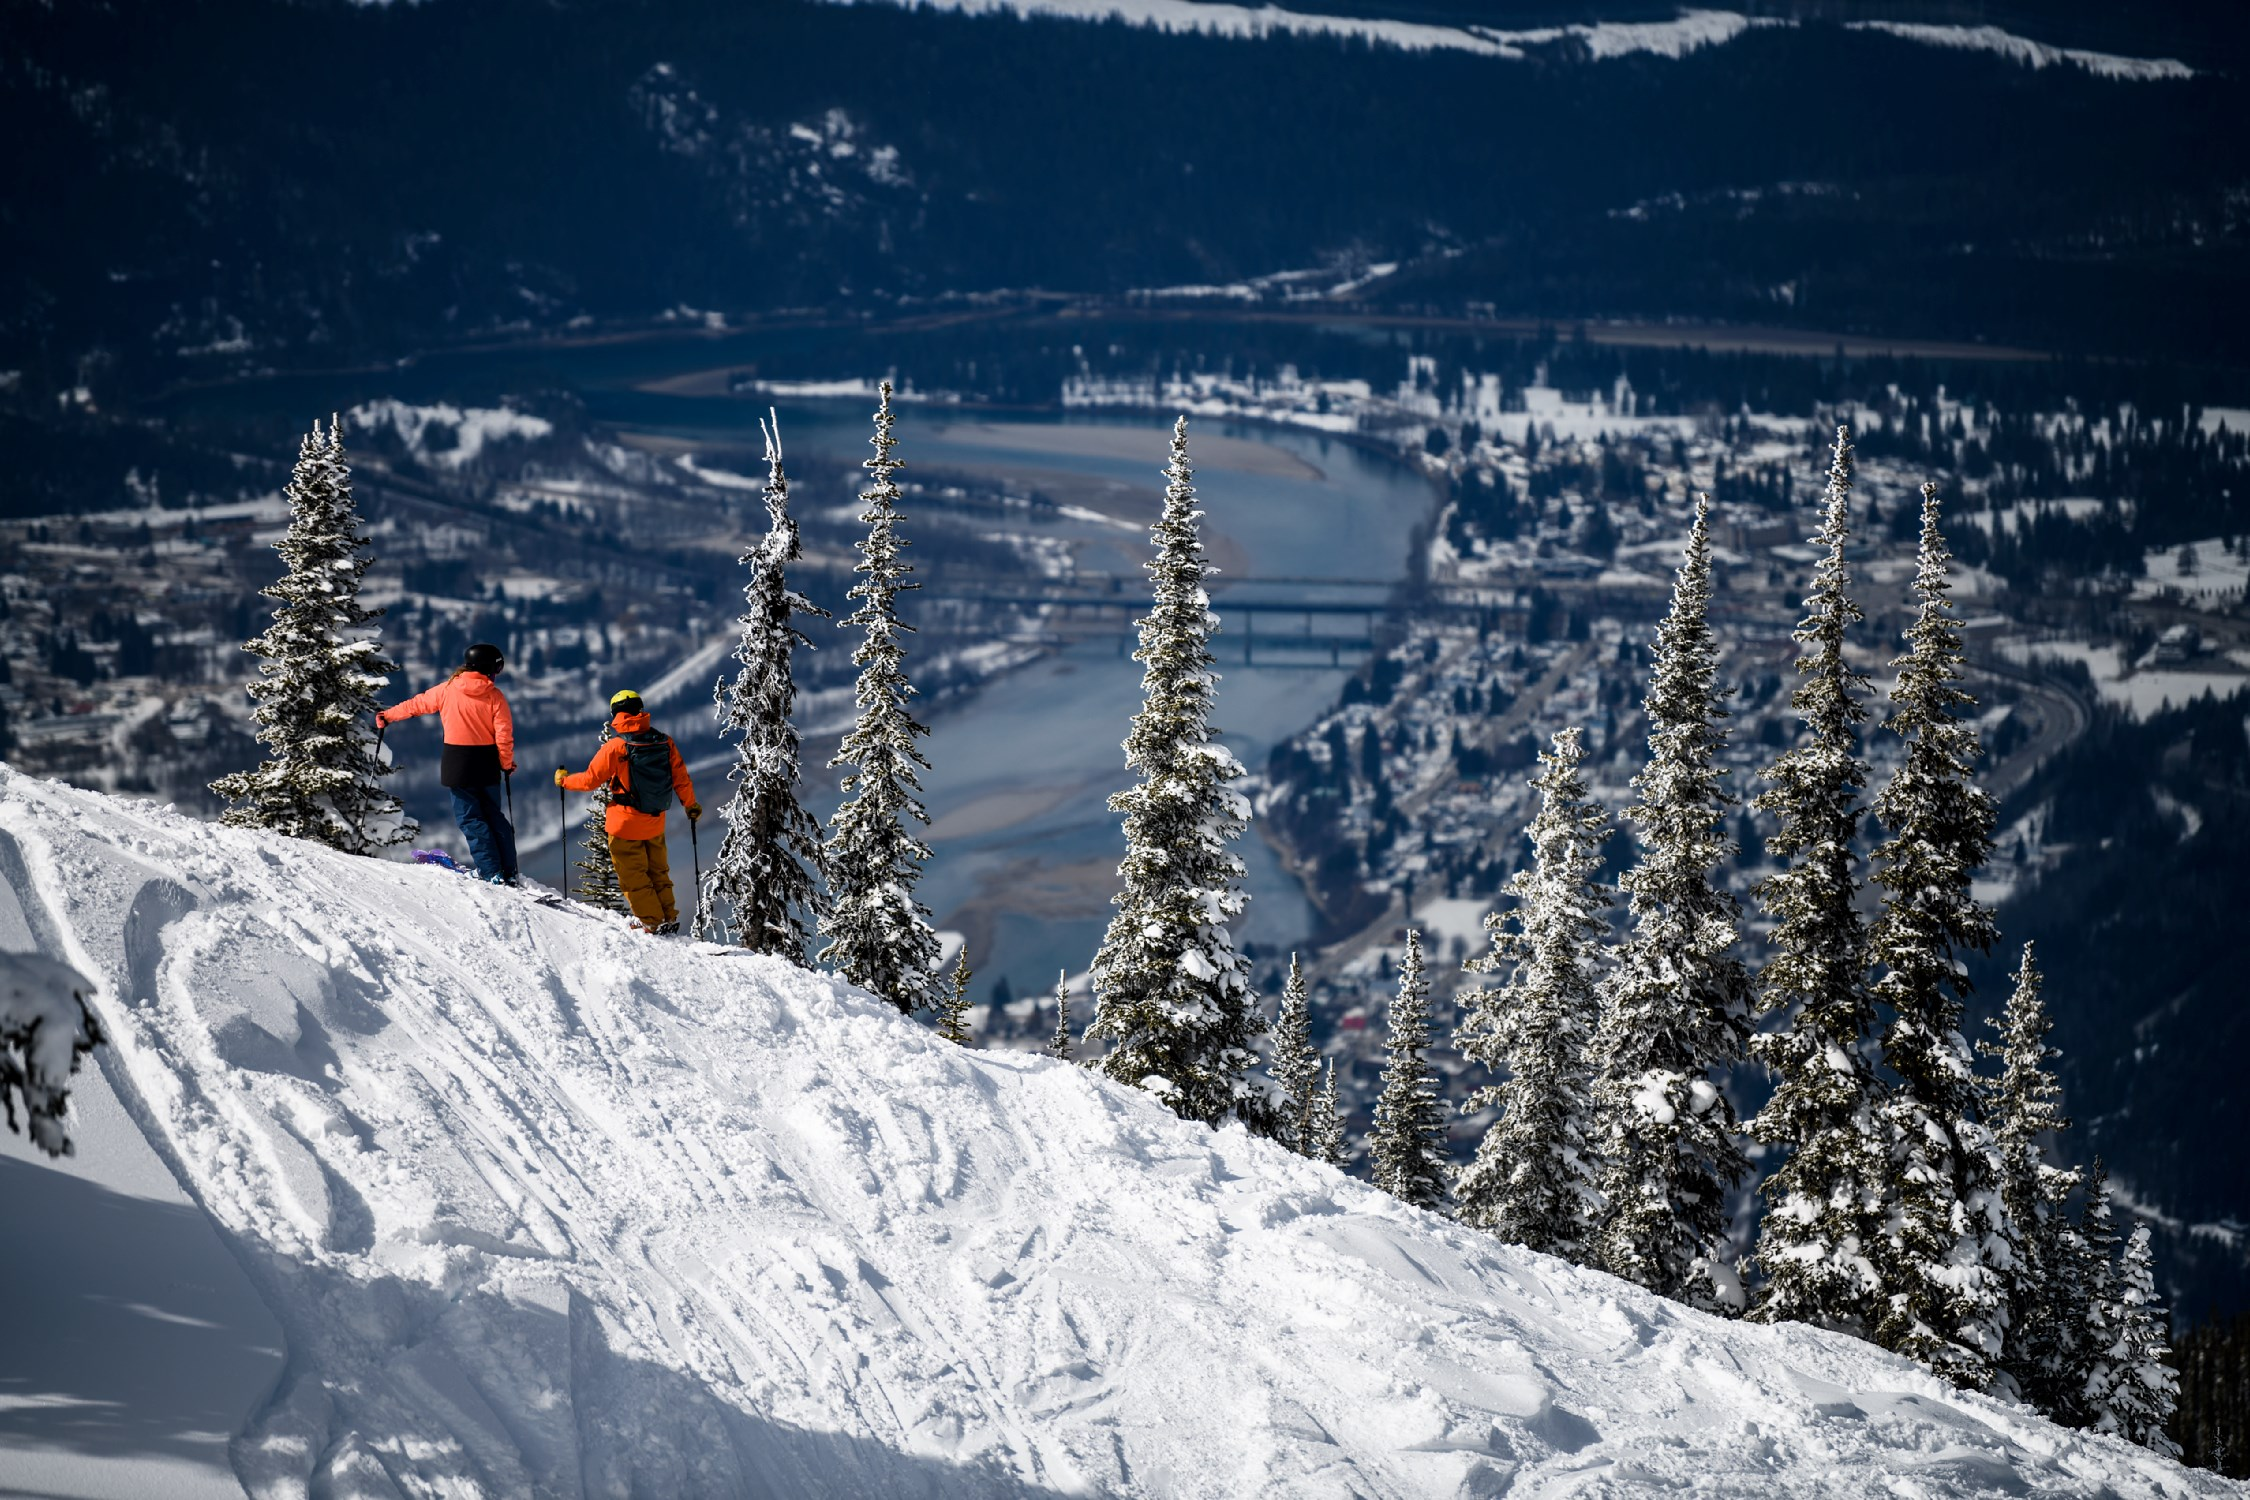 The City of Revelstoke lies along the banks of the mighty Columbia River, surrounded by truly big mountains. Also handy: Revelstoke holds the reported record for the Canadian location with single greatest amount of snowfall in any single winter (about 80 feet or 24 meters, in the winter of 1971-1972).  Andrew Strain | Courtesy Destination BC